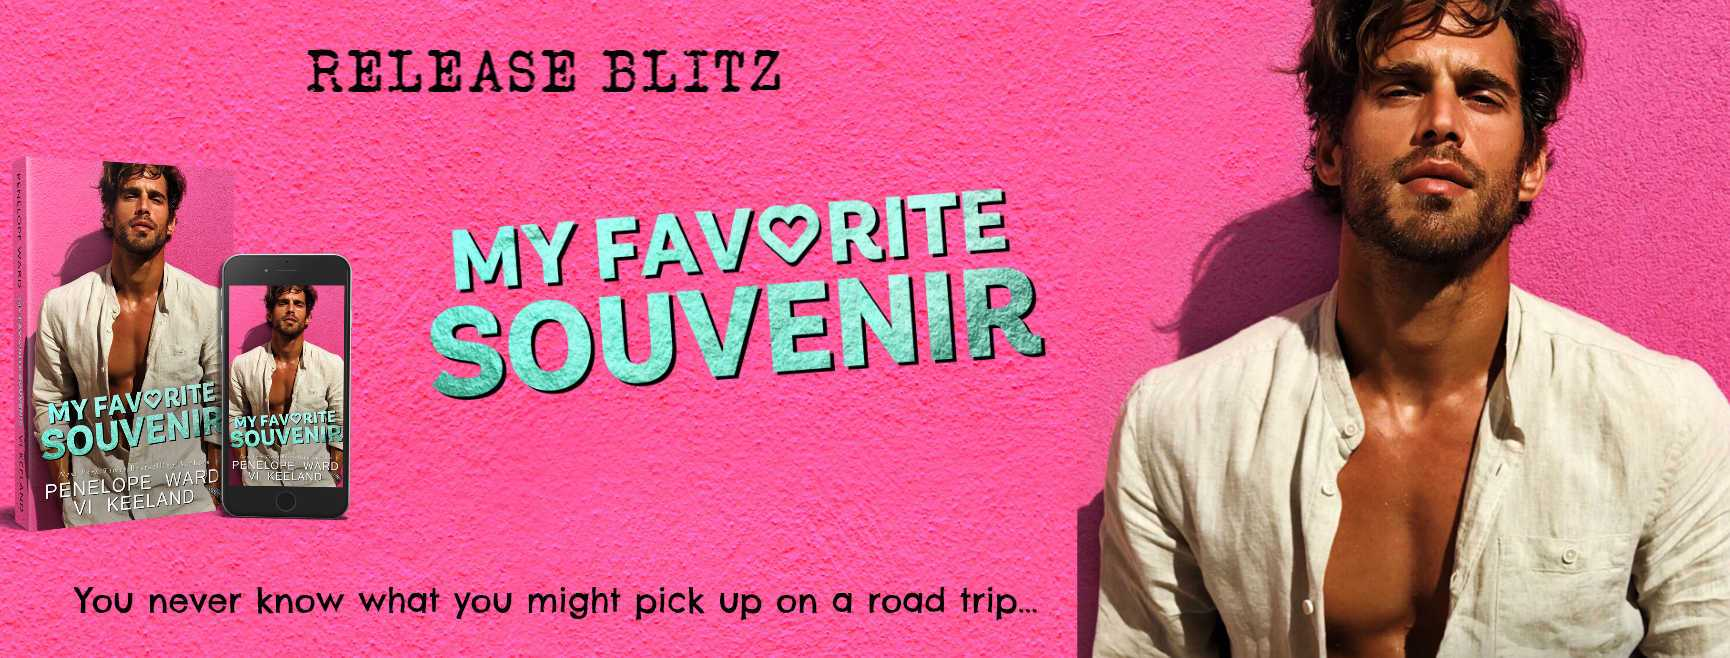 Release Blitz: My Favorite Souvenir by Vi Keeland and Penelope Ward